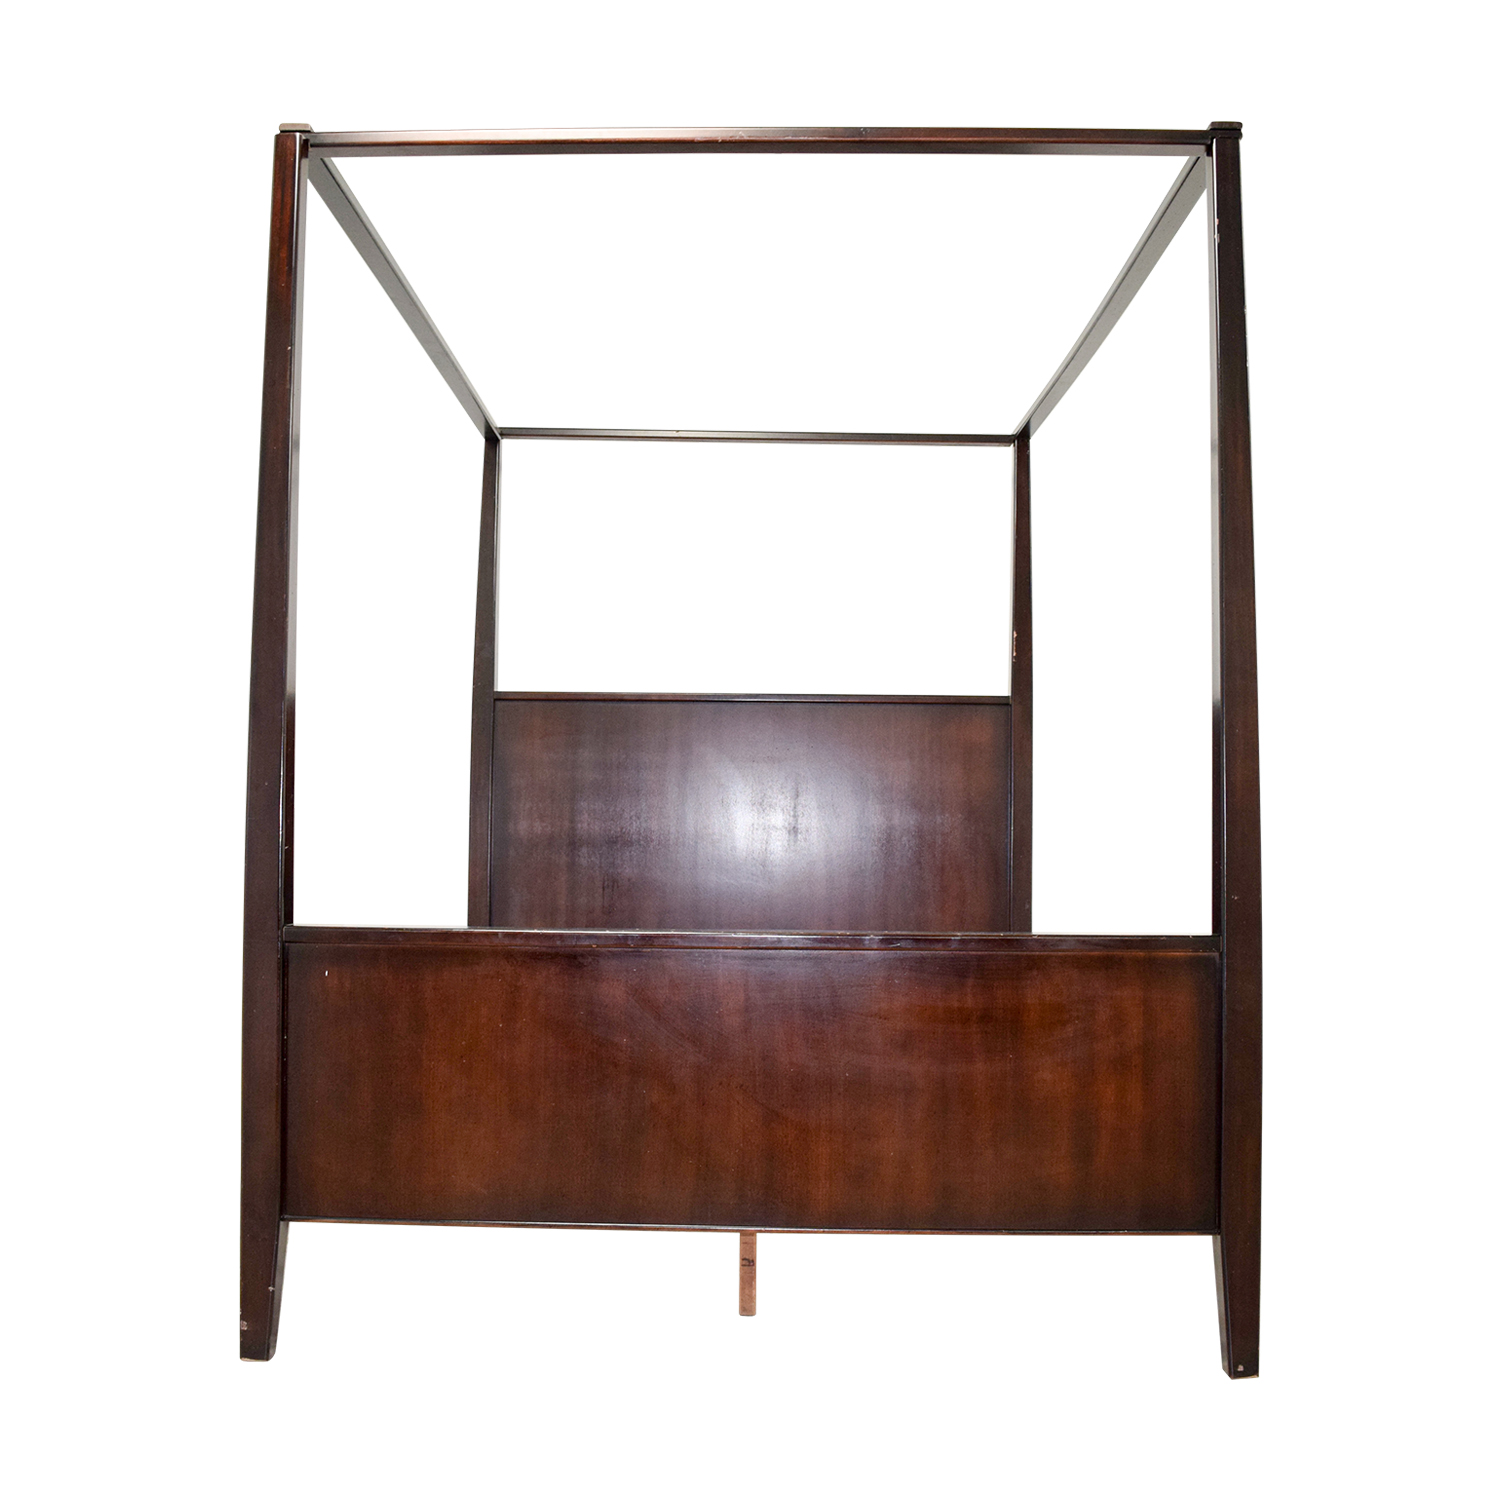 Crate & Barrel Queen Four-Poster Bed sale